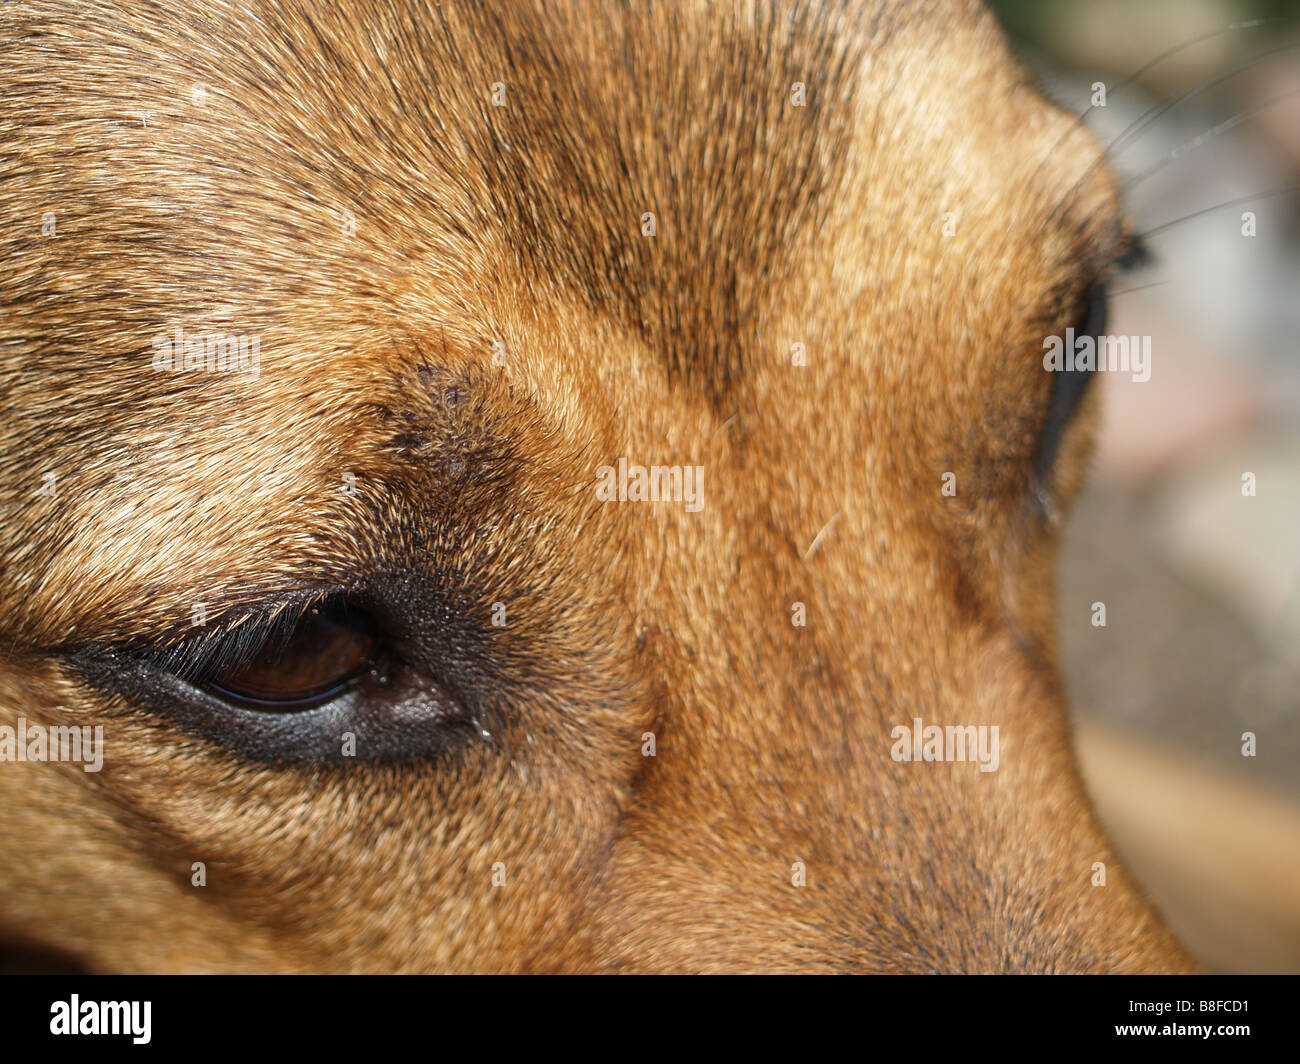 Extreme close up of a cute brown dog. - Stock Image